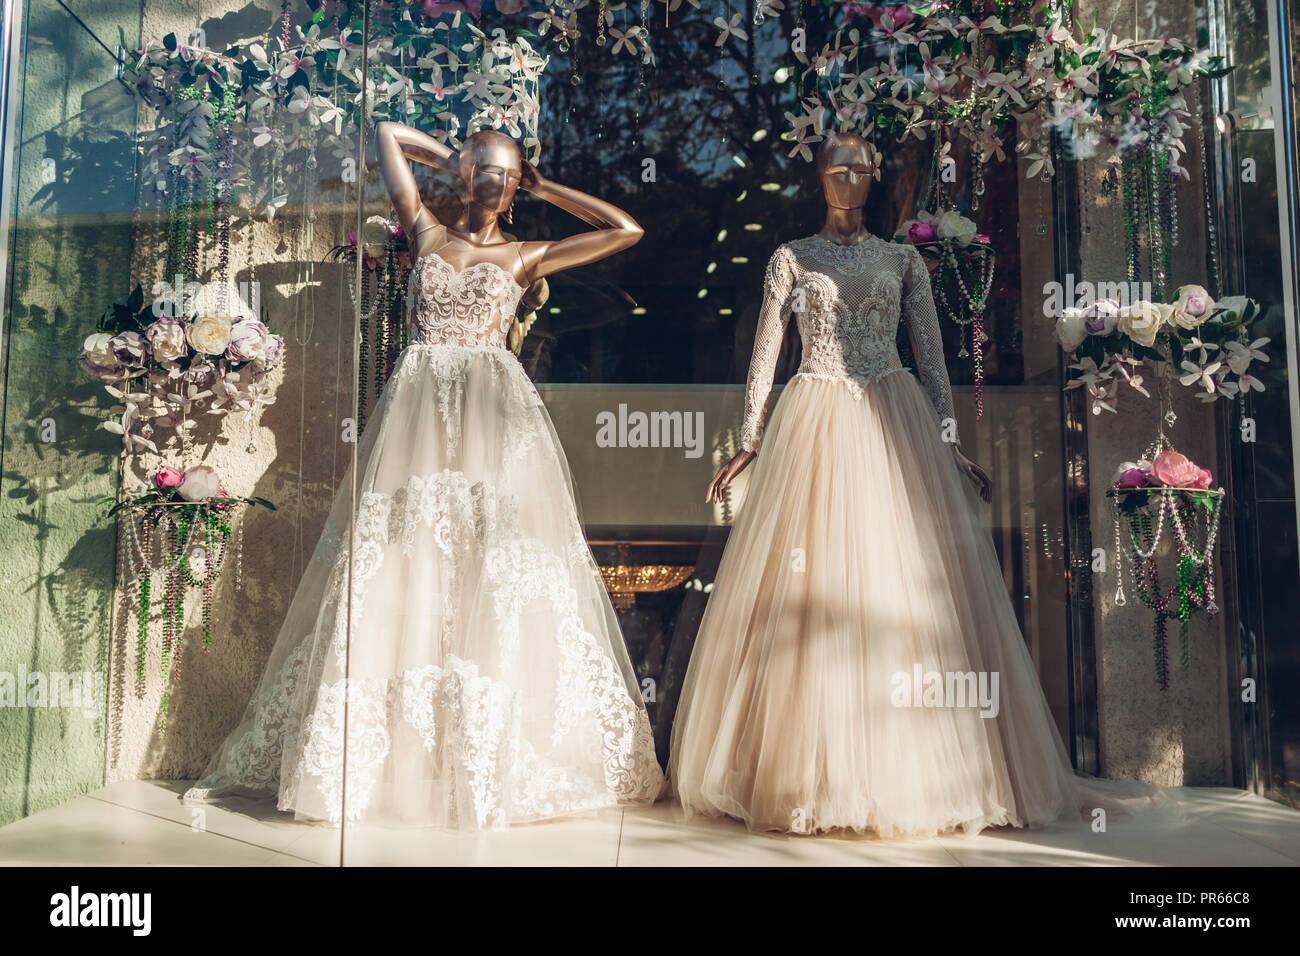 27c6daeb4 Collection of stylish wedding dresses on showcase of shop. Two mannequins  wearing beautiful gowns on